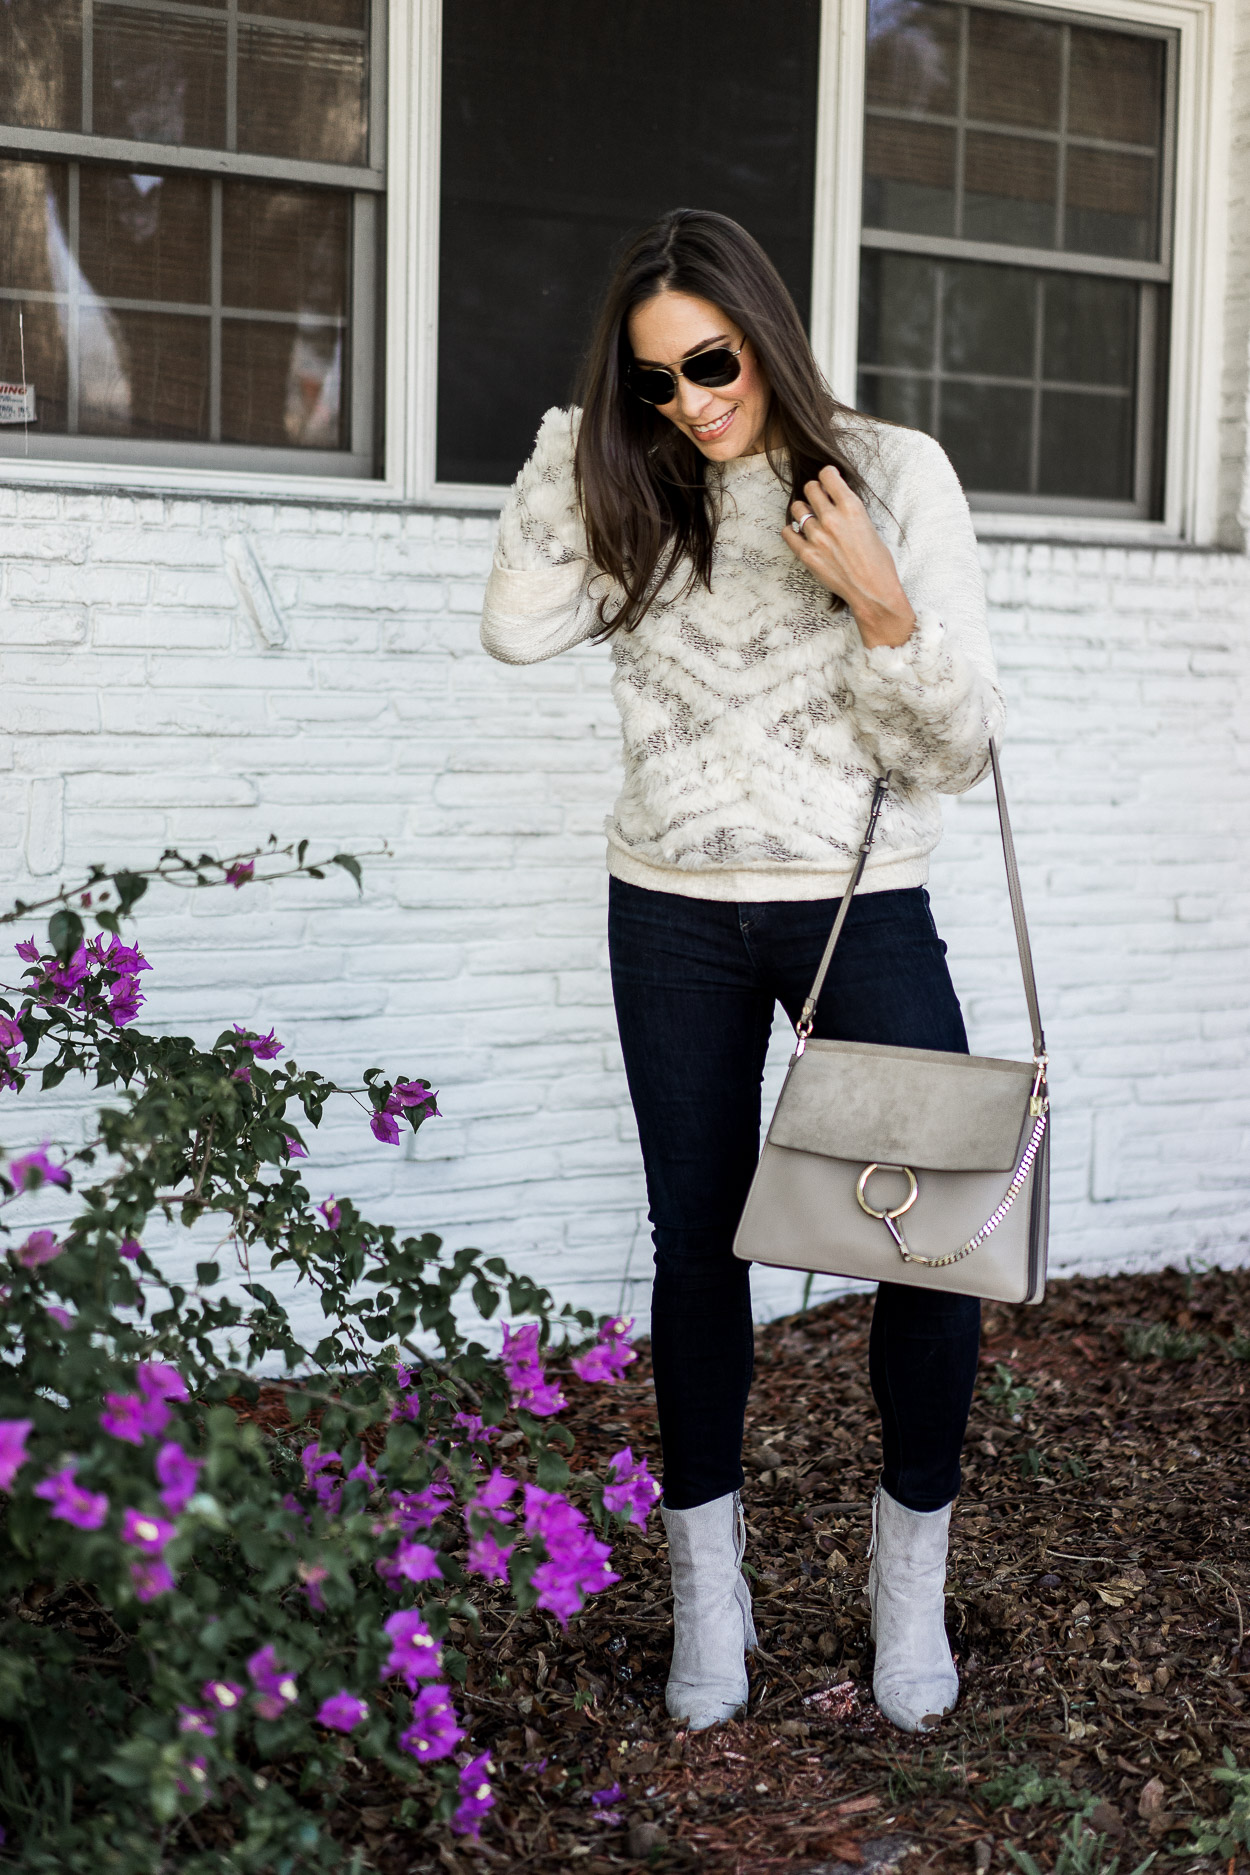 This Anthropologie knit is one of their best cozy sweaters